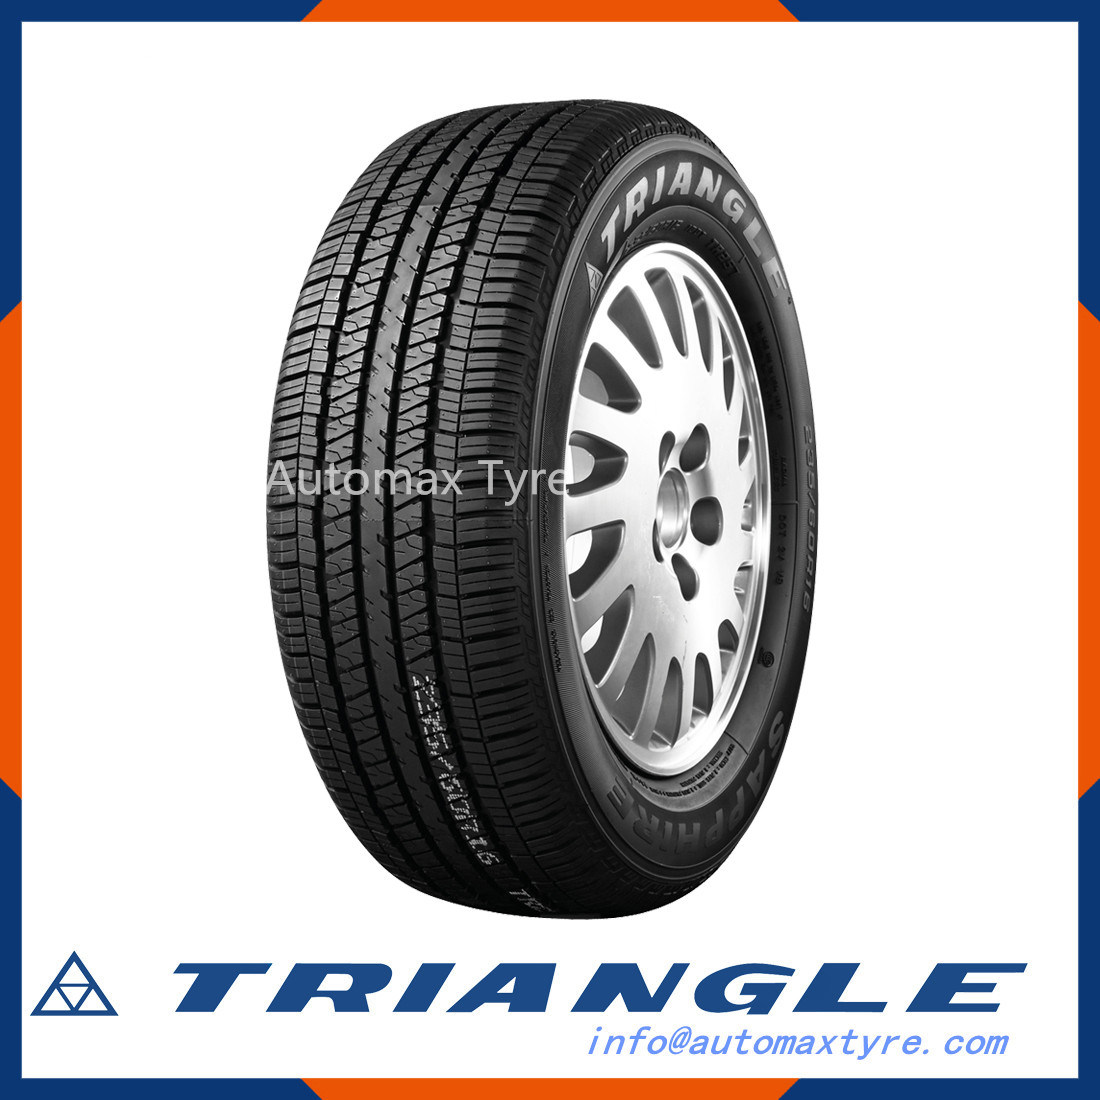 Triangle Group Highway Terrain EU label 4X4 SUV Good Quality Car Tyre